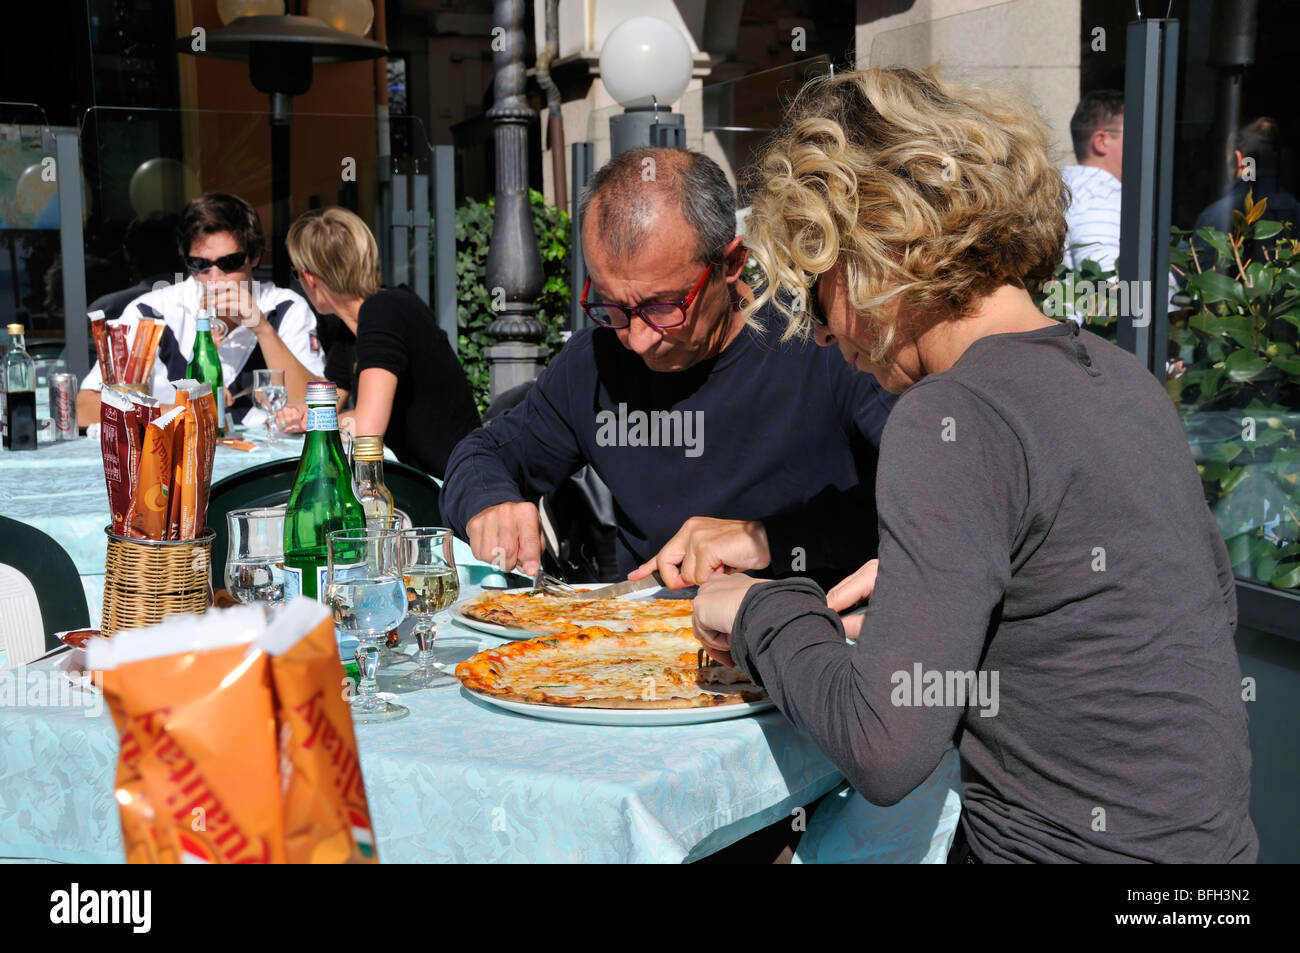 A caucasian couple eating pizza at pizzeria, Italy, Europe, Stock Photo